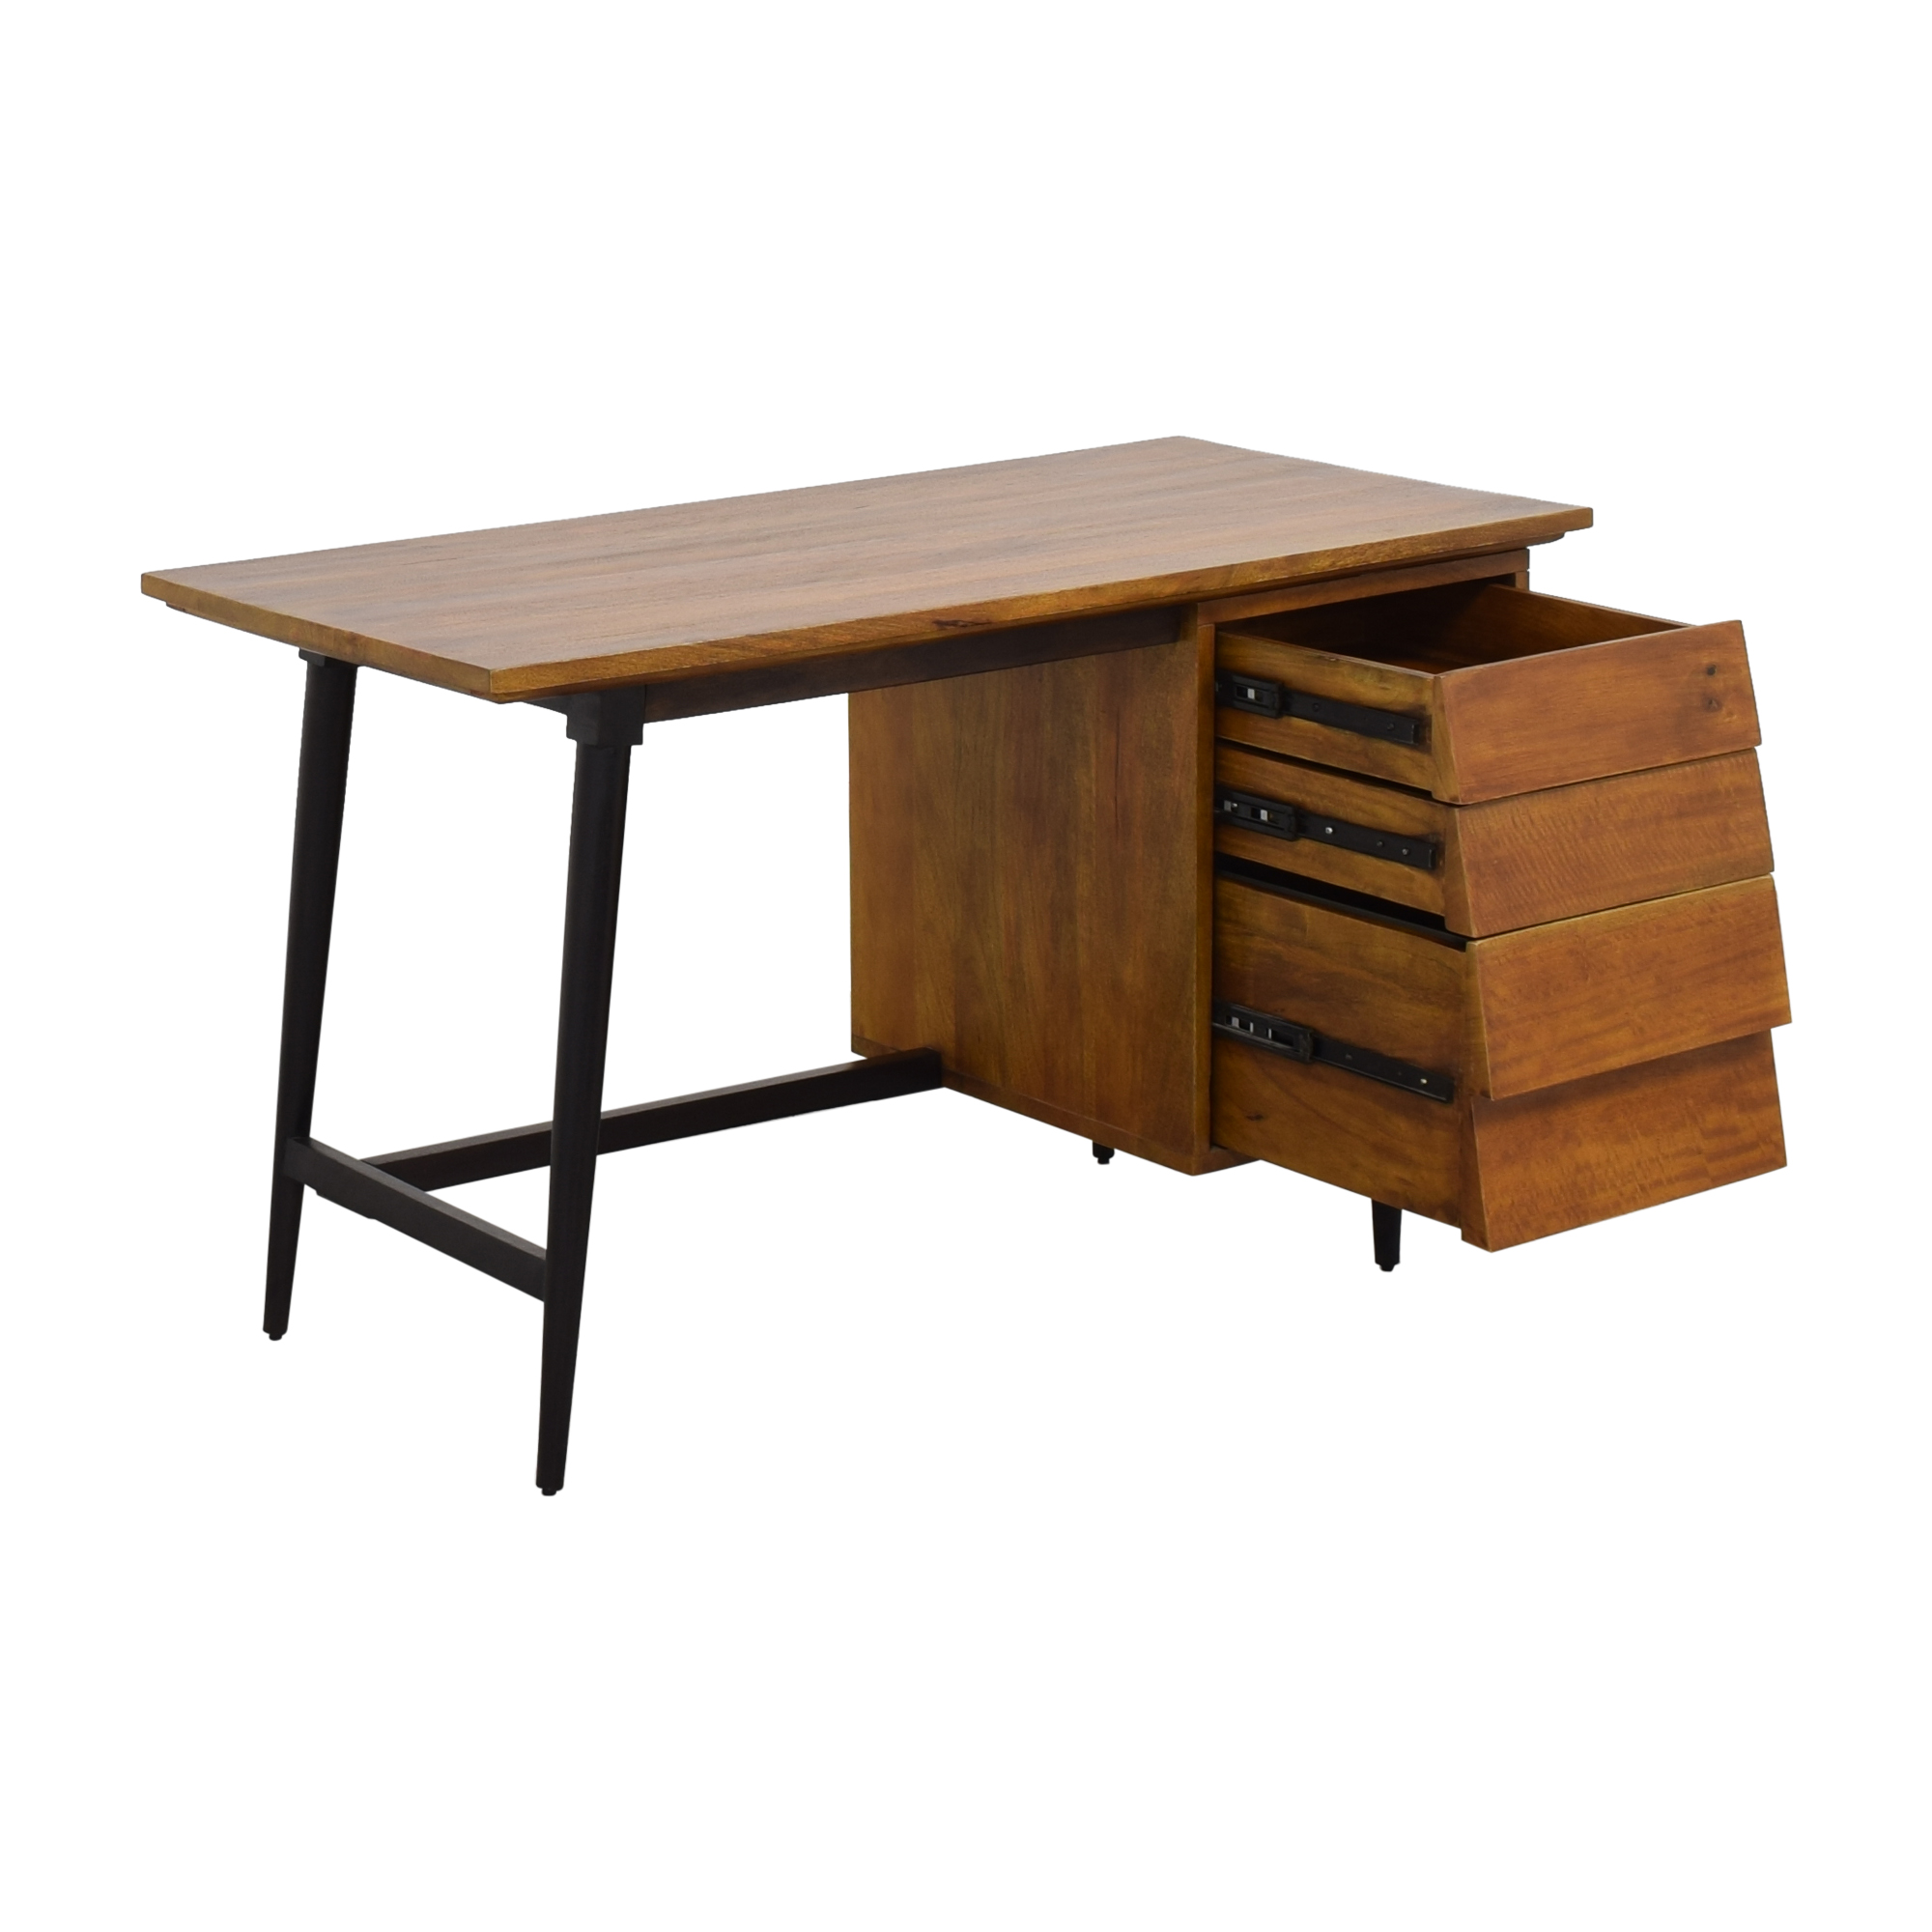 West Elm West Elm Lars Mid-Century Desk used